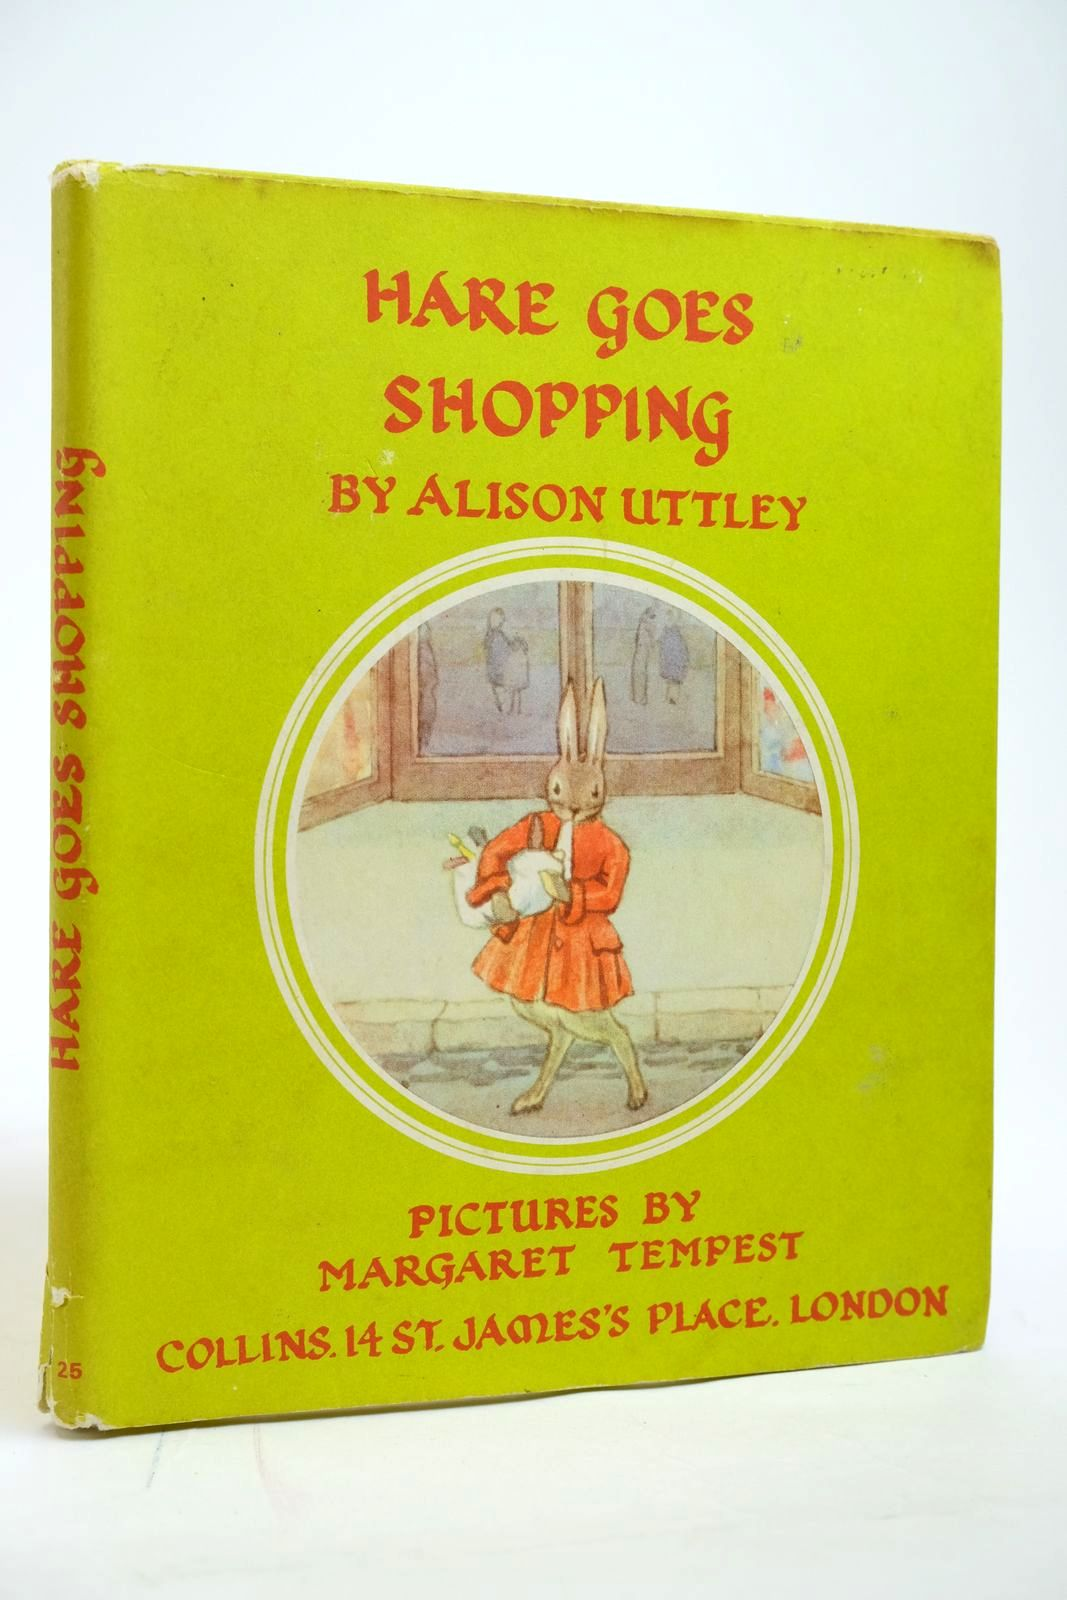 Photo of HARE GOES SHOPPING written by Uttley, Alison illustrated by Tempest, Margaret published by Collins (STOCK CODE: 2135097)  for sale by Stella & Rose's Books